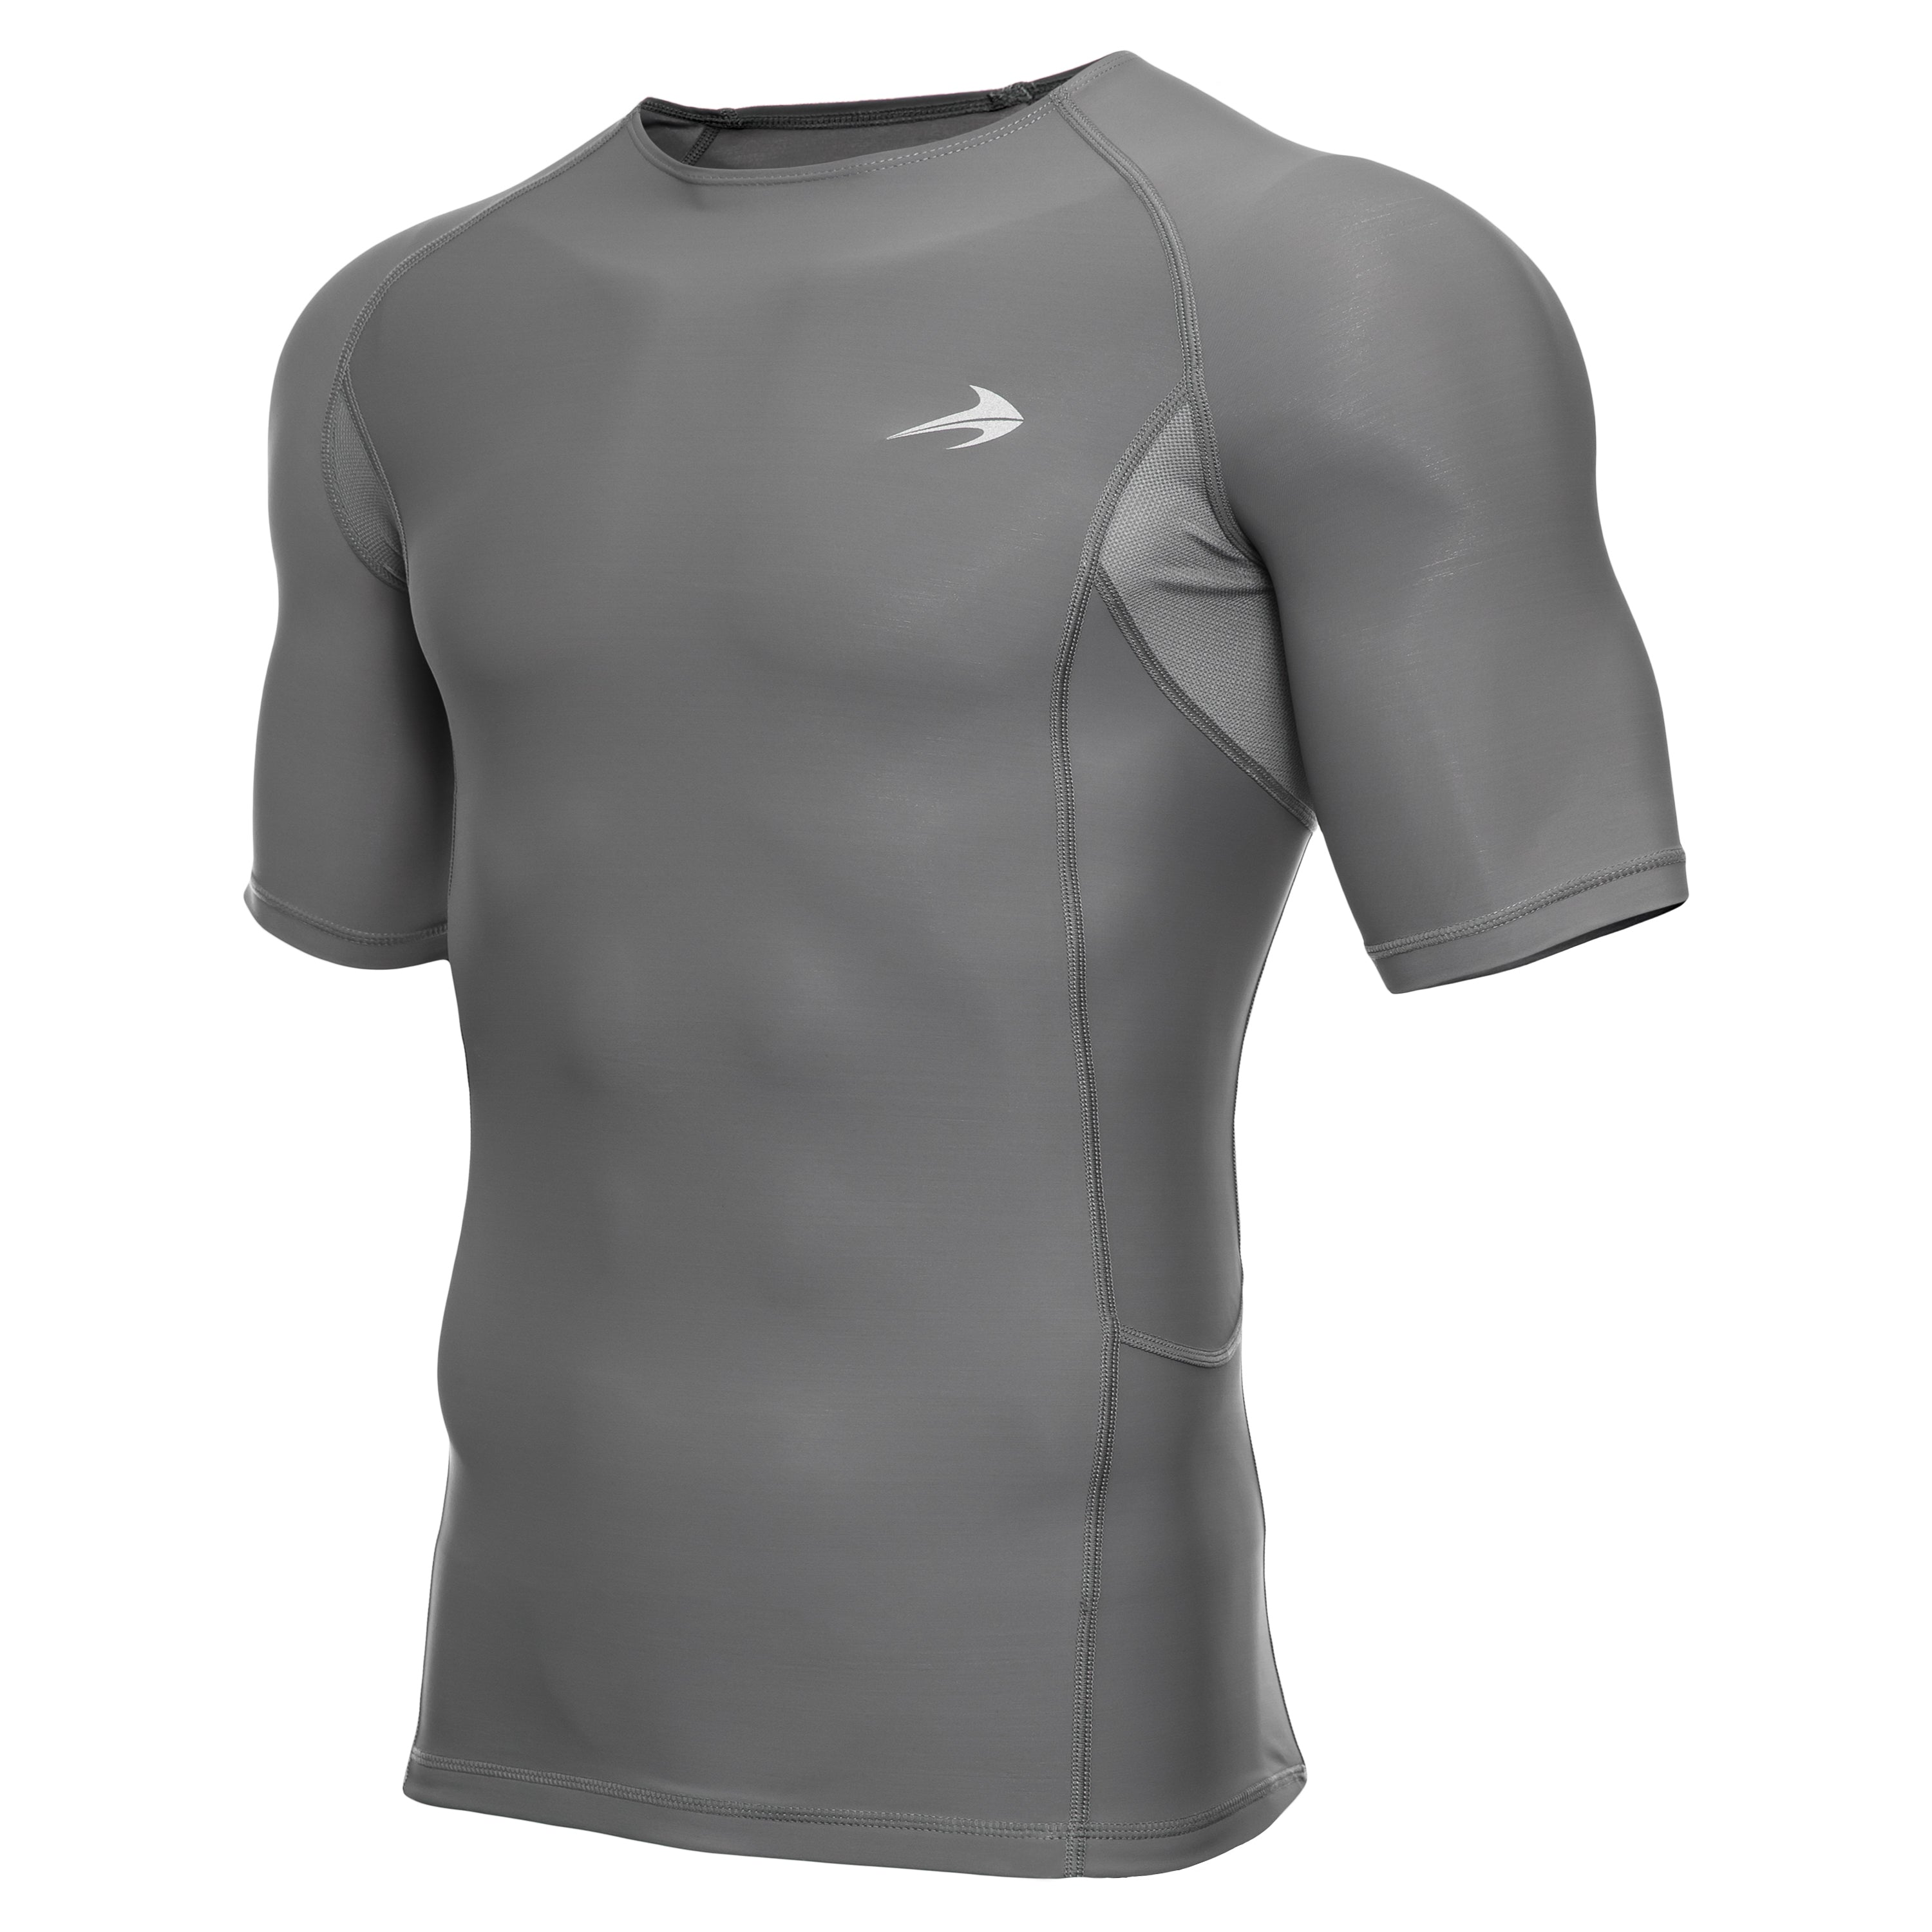 Men's Compression Short Sleeve Shirt - Dark Gray